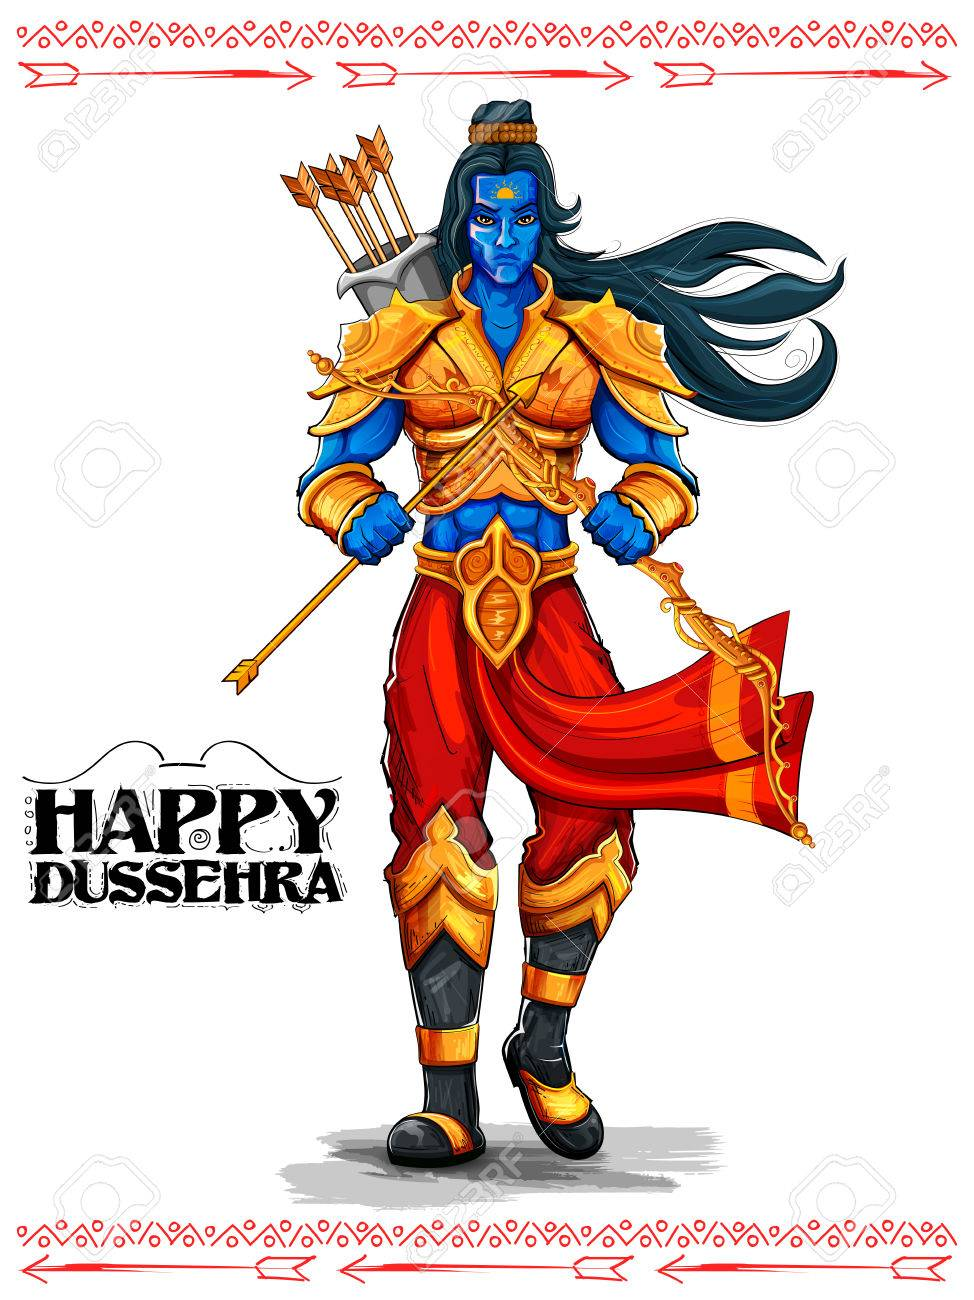 illustration of Lord Rama with arrow in Dussehra Navratri festival of India poster - 66763506